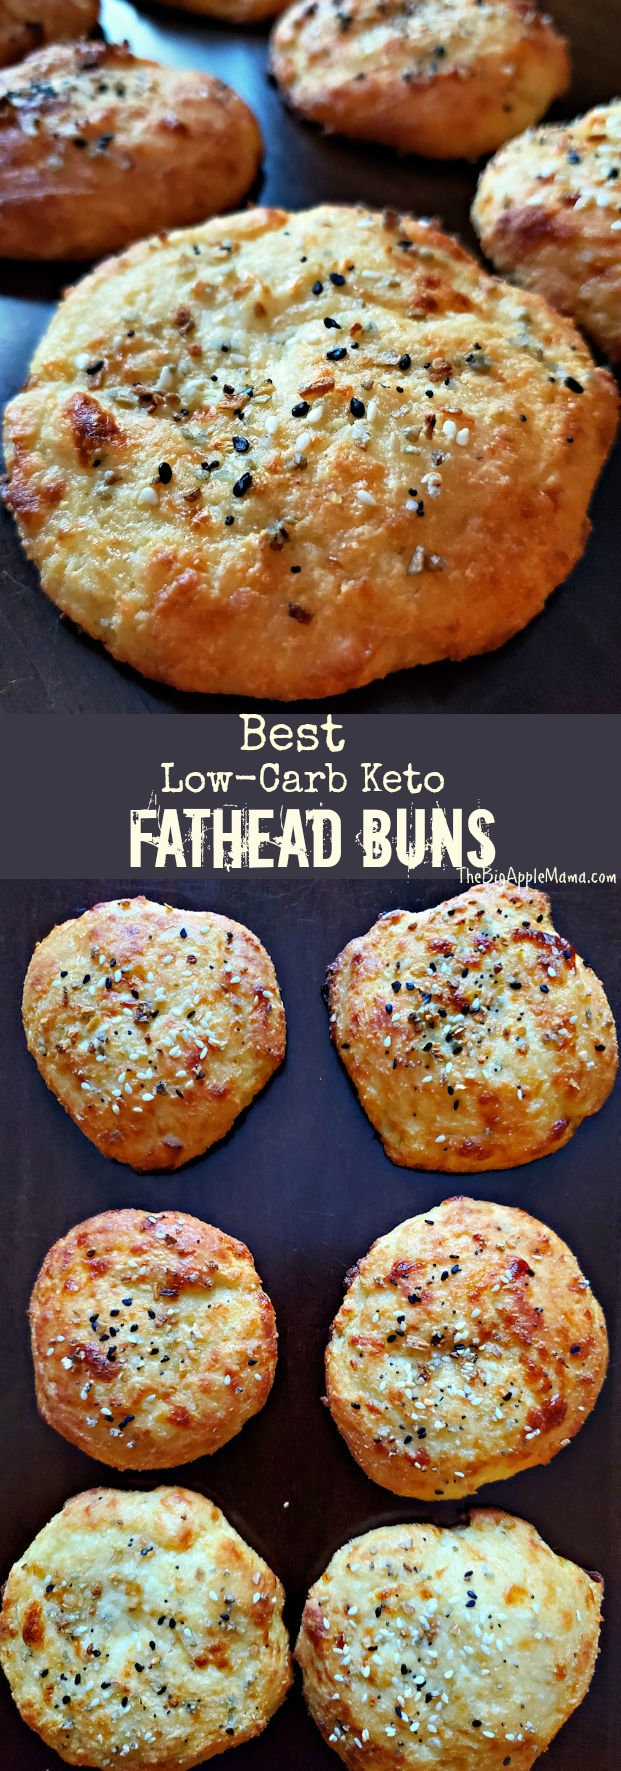 Best Keto Low Carb Bread Buns Made From Fathead Dough